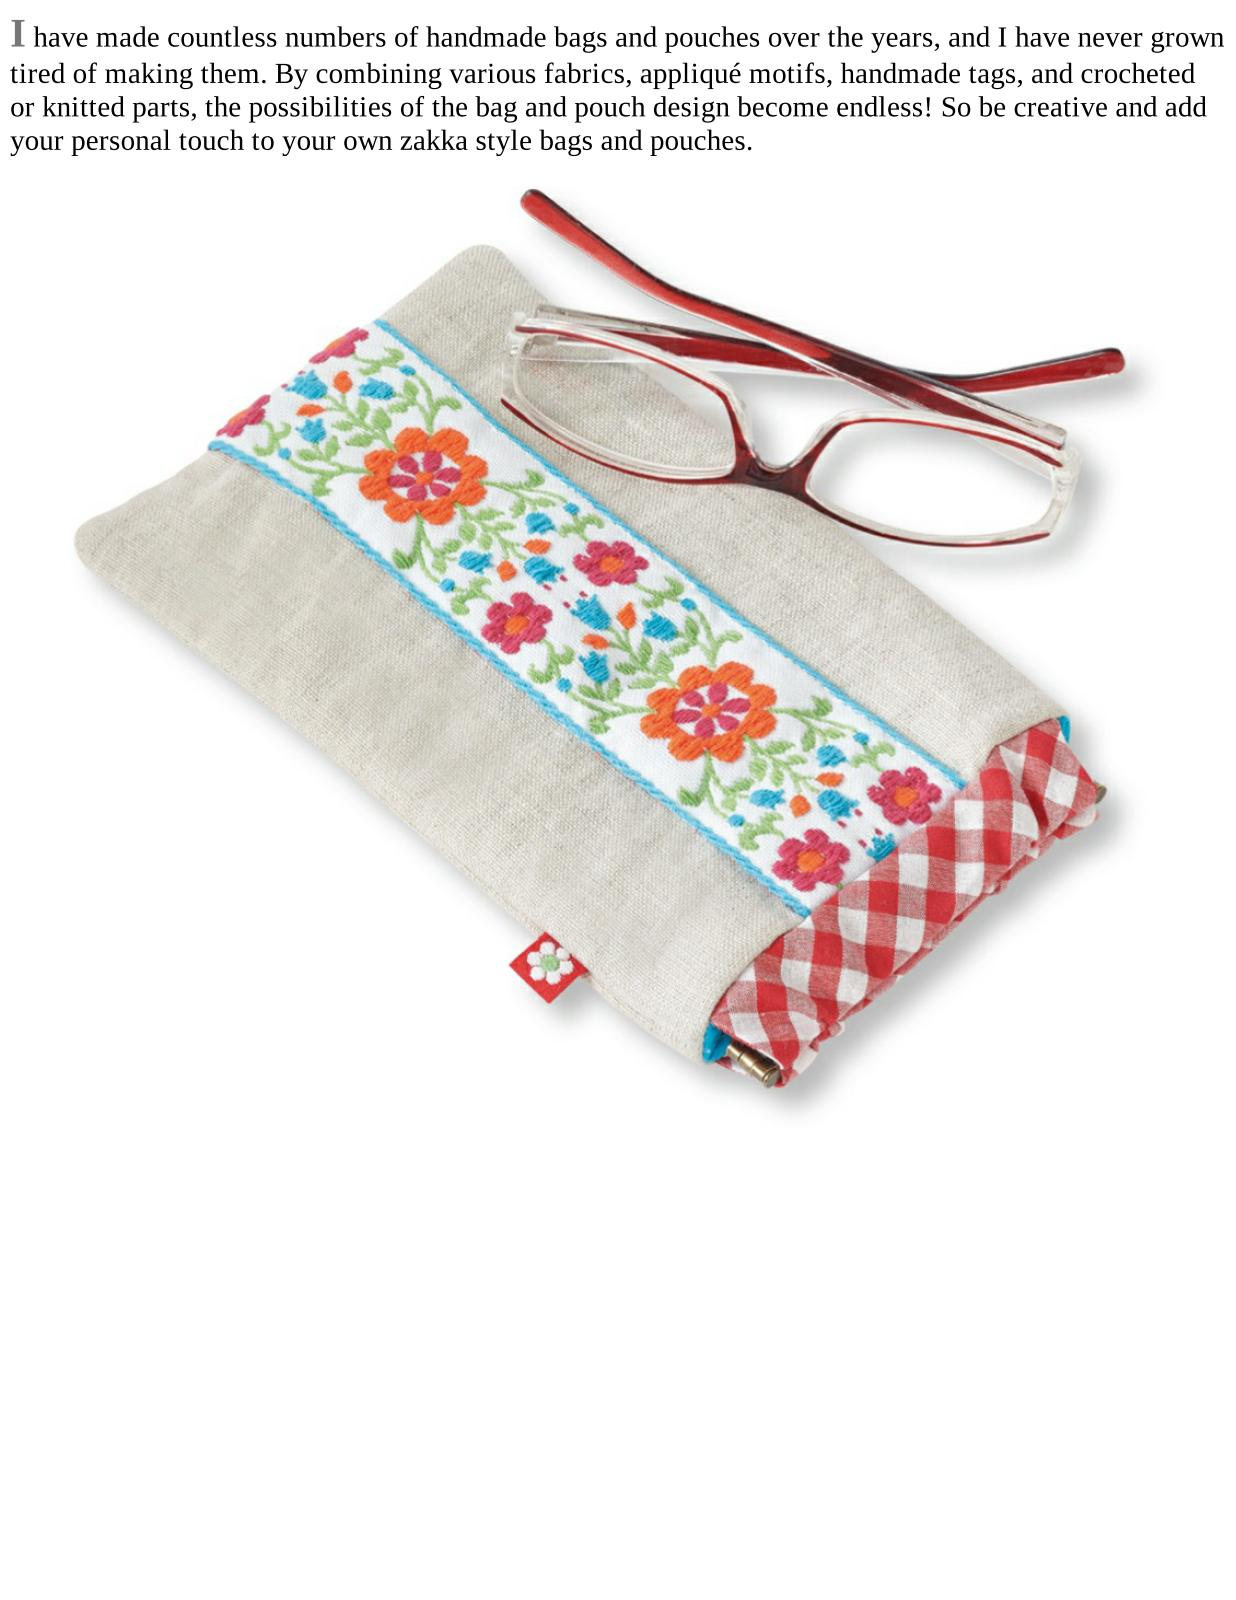 Bags and Pouches Zakka Style